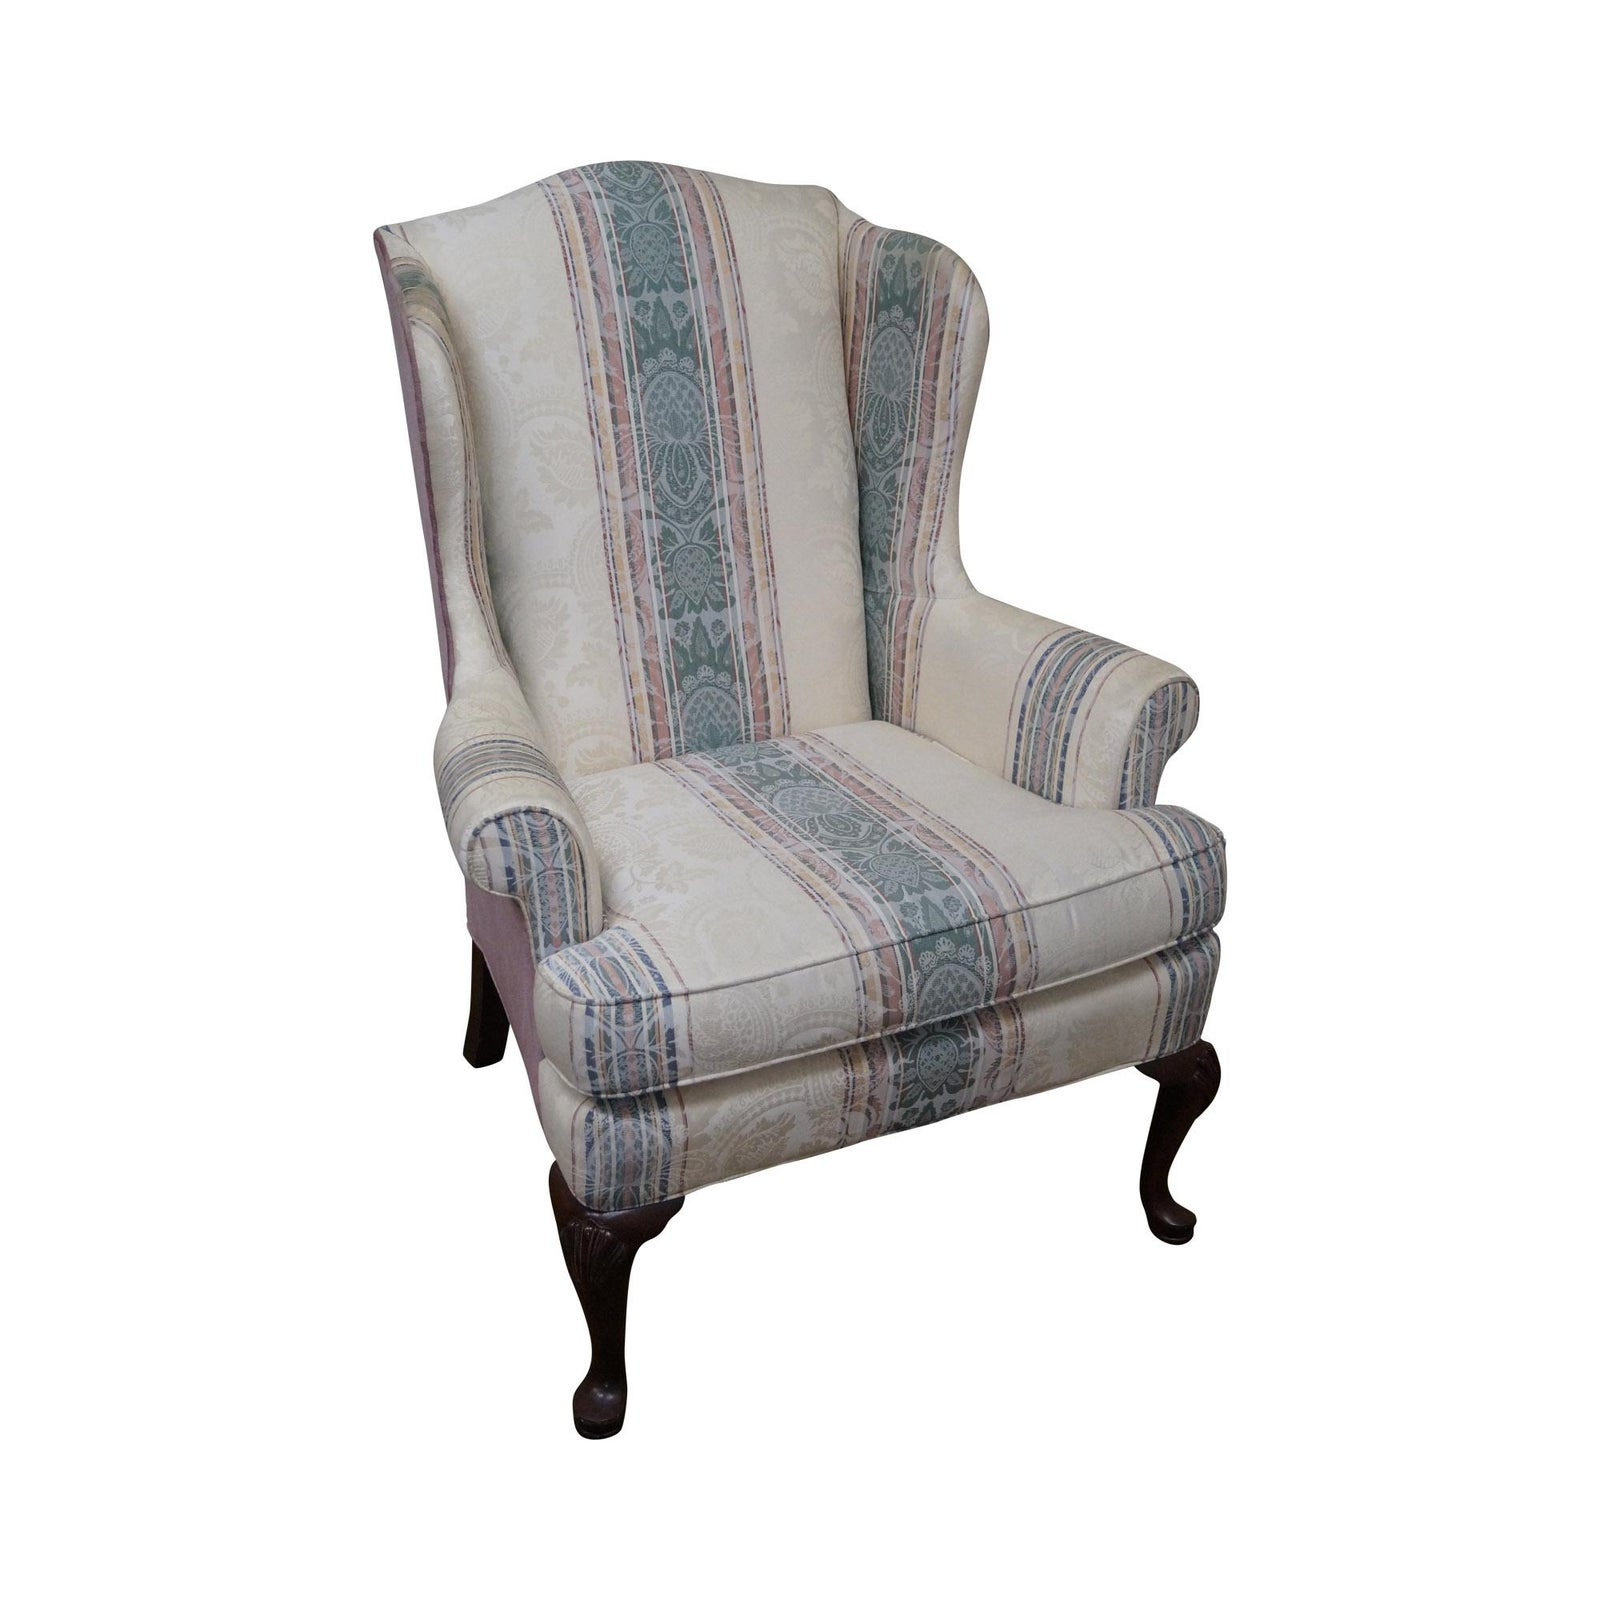 Highland House Hickory Queen Anne Wing Chair Chairish